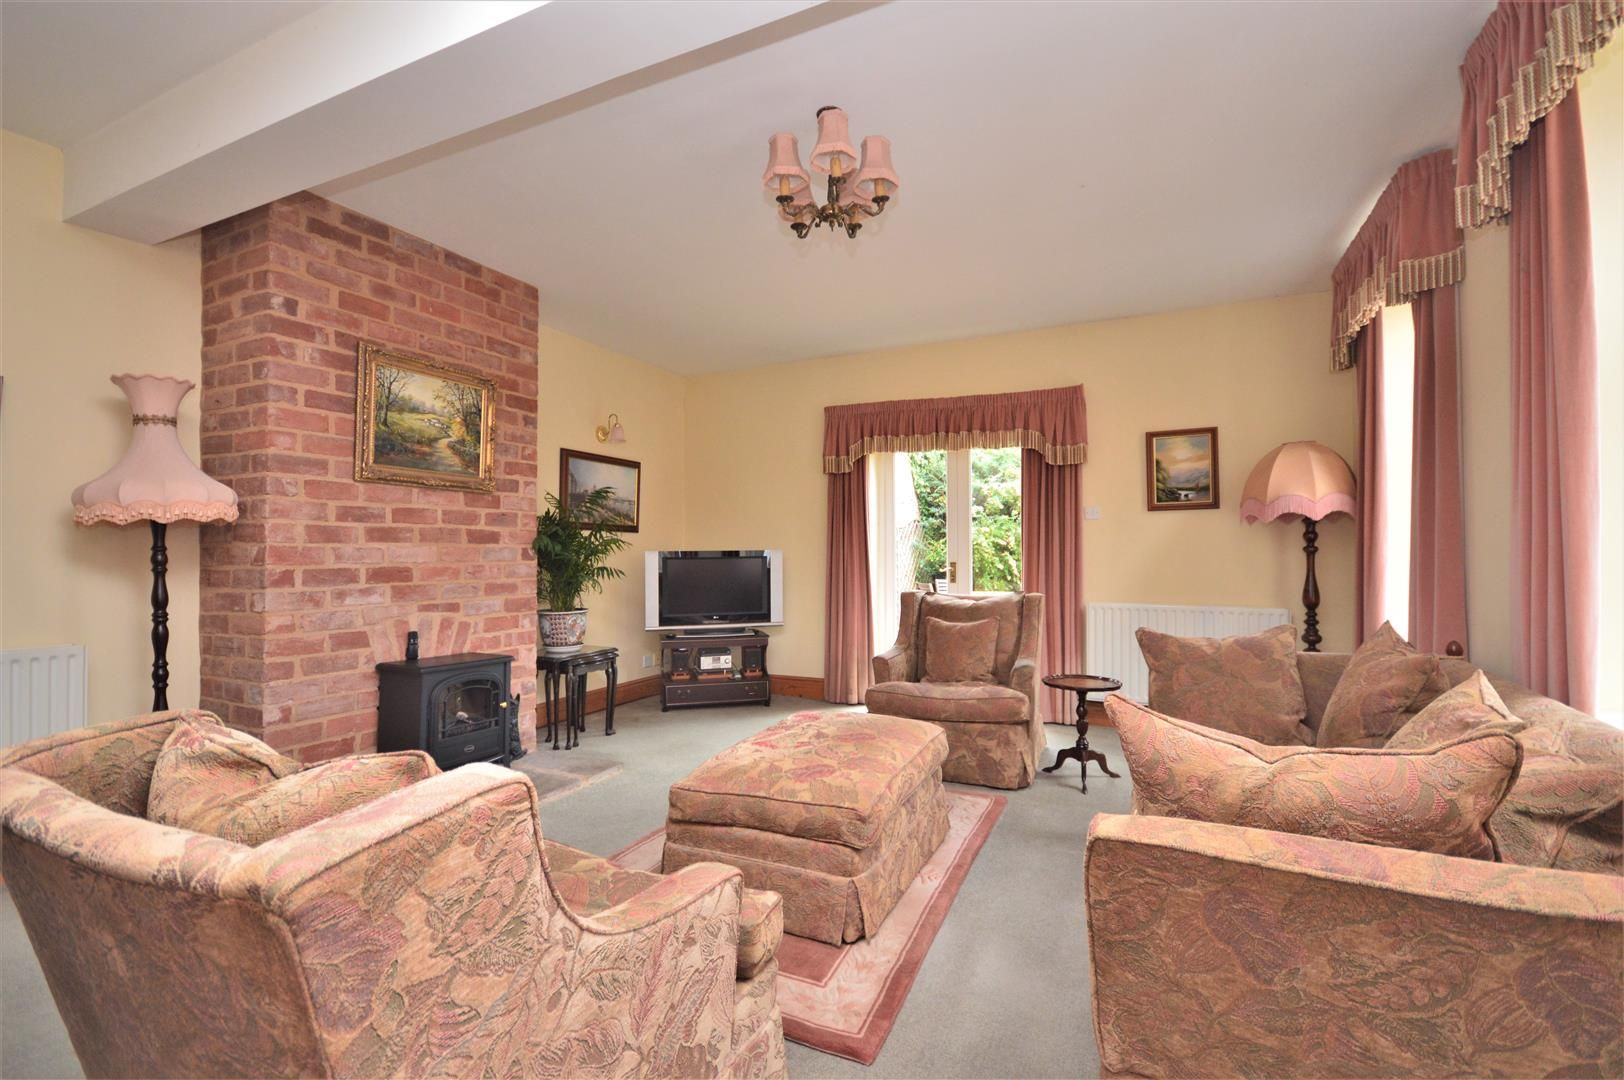 4 bed semi-detached for sale in Nr Madley  - Property Image 6